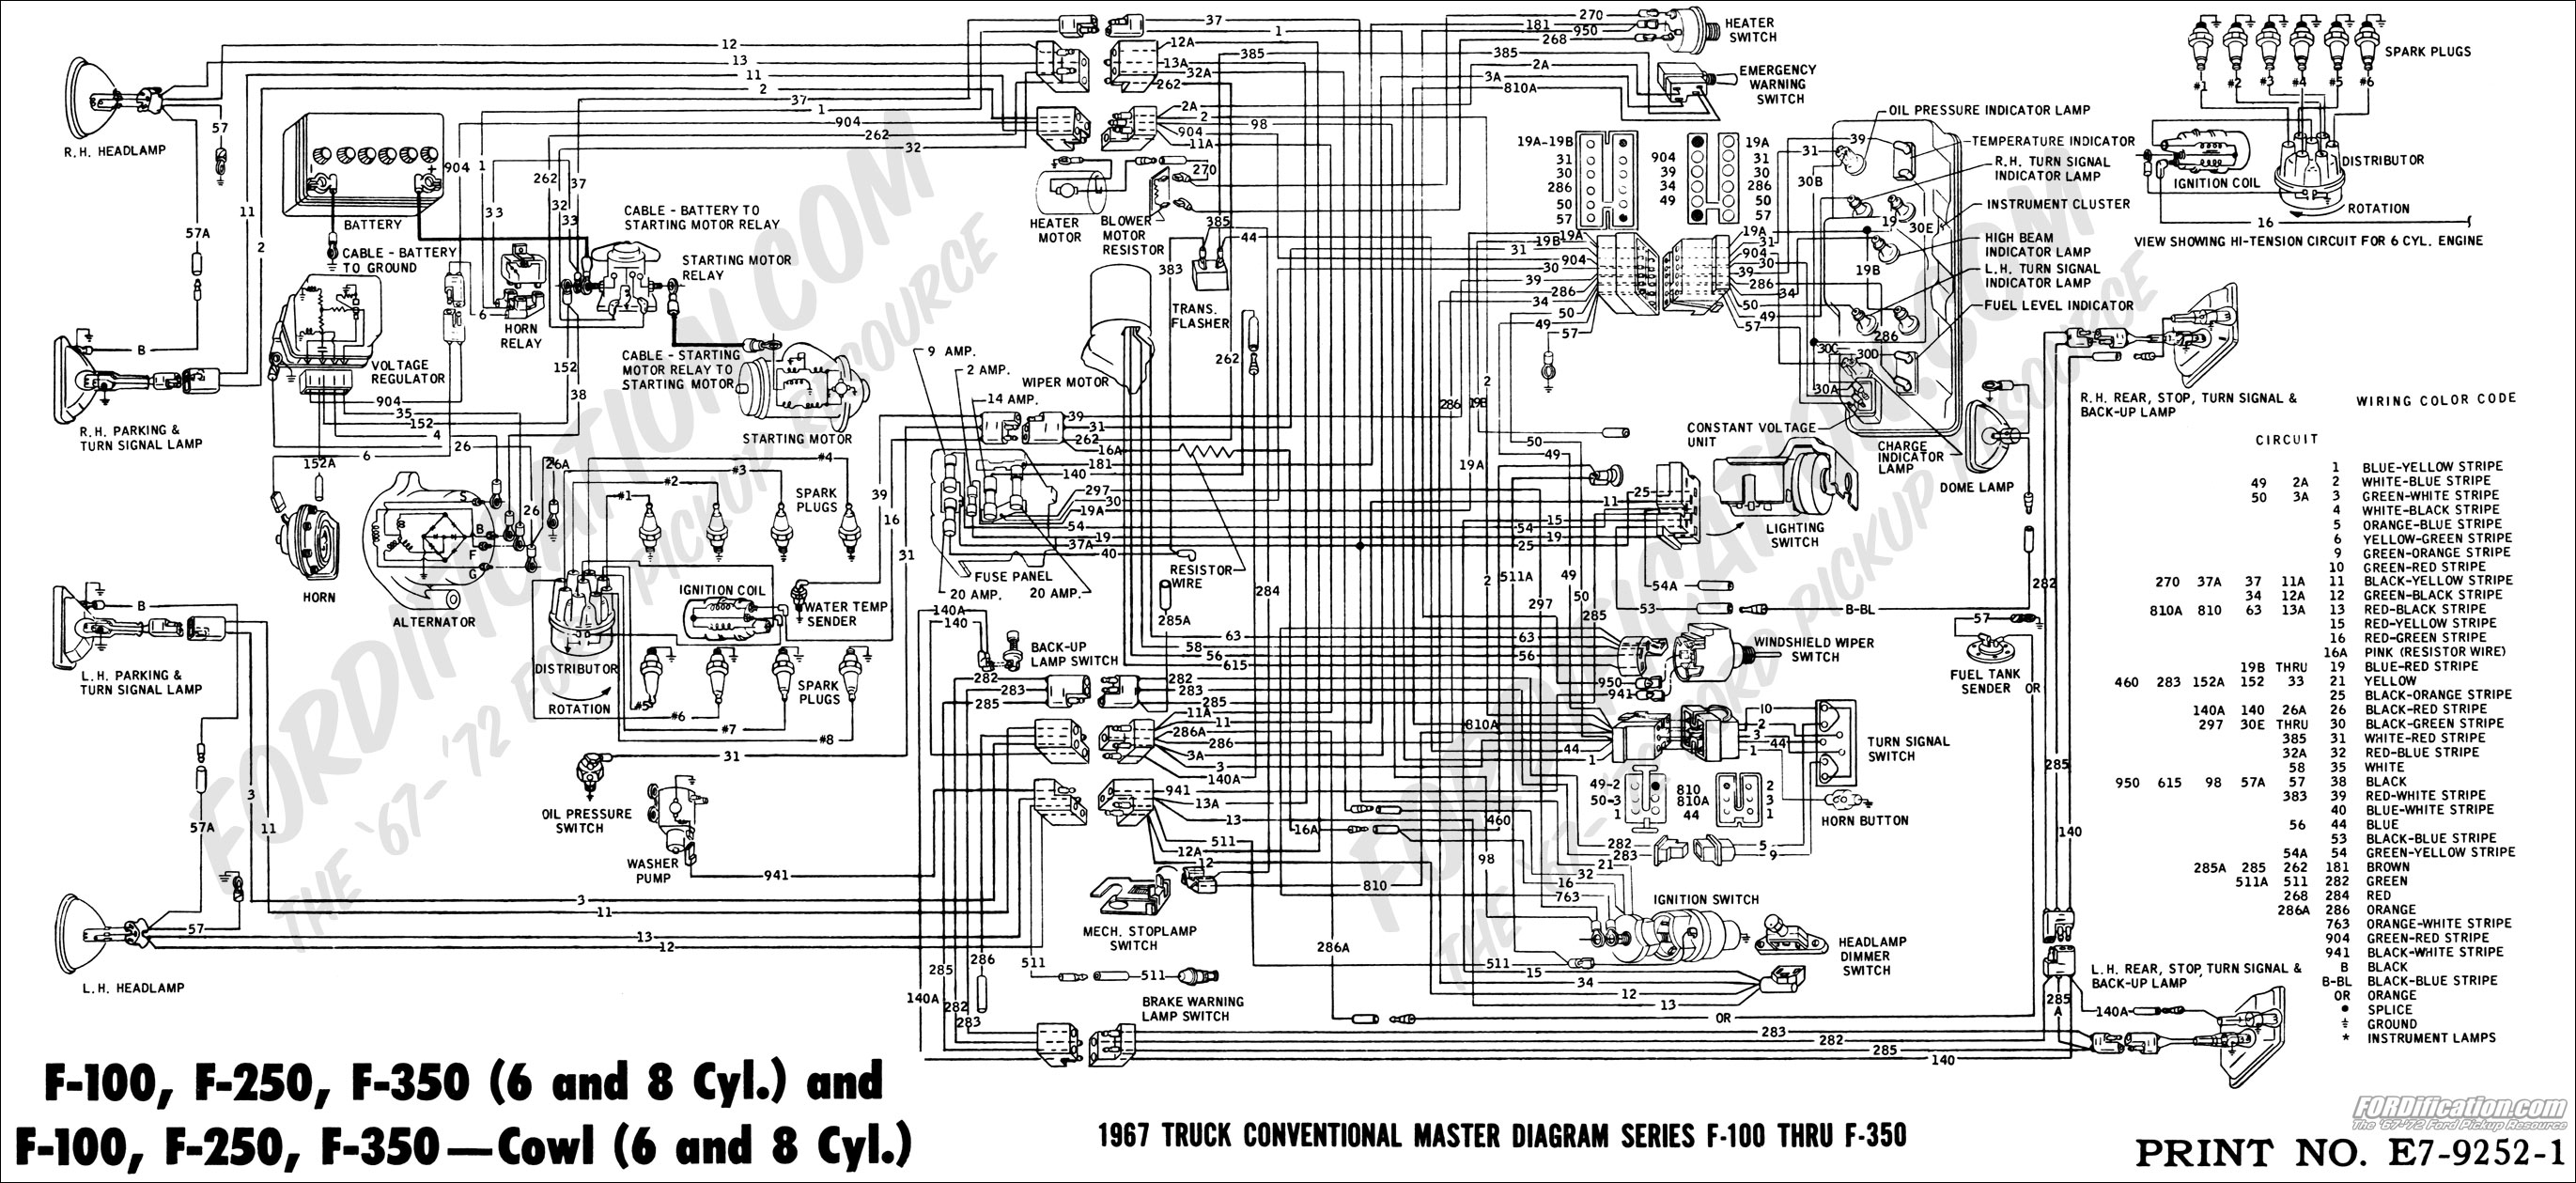 67masterdiagram ford truck technical drawings and schematics section h wiring wiring diagram for ford f150 2004 radio at edmiracle.co